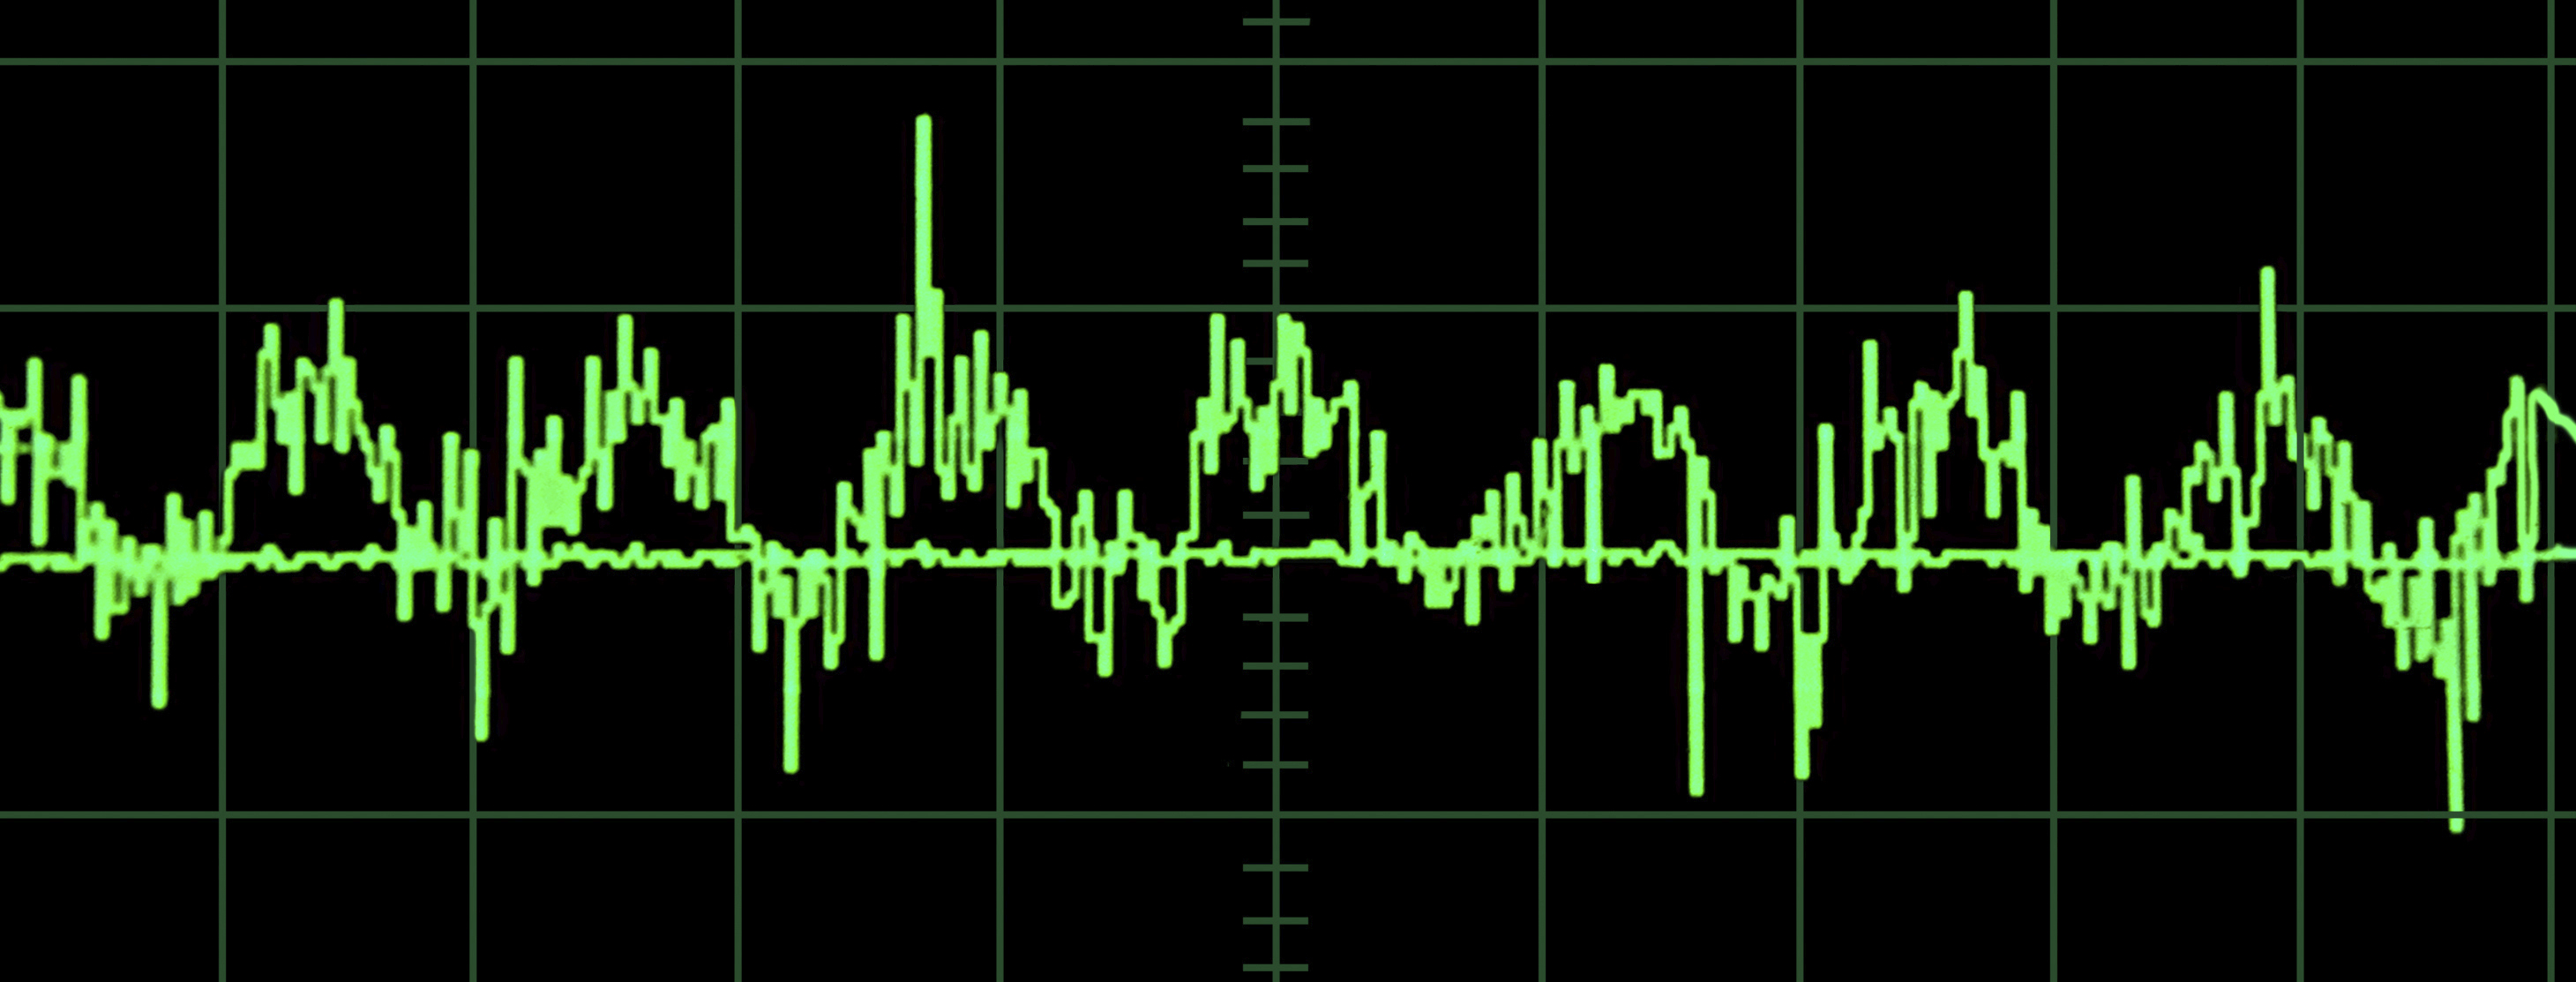 frequency and volume of sound waves lab report